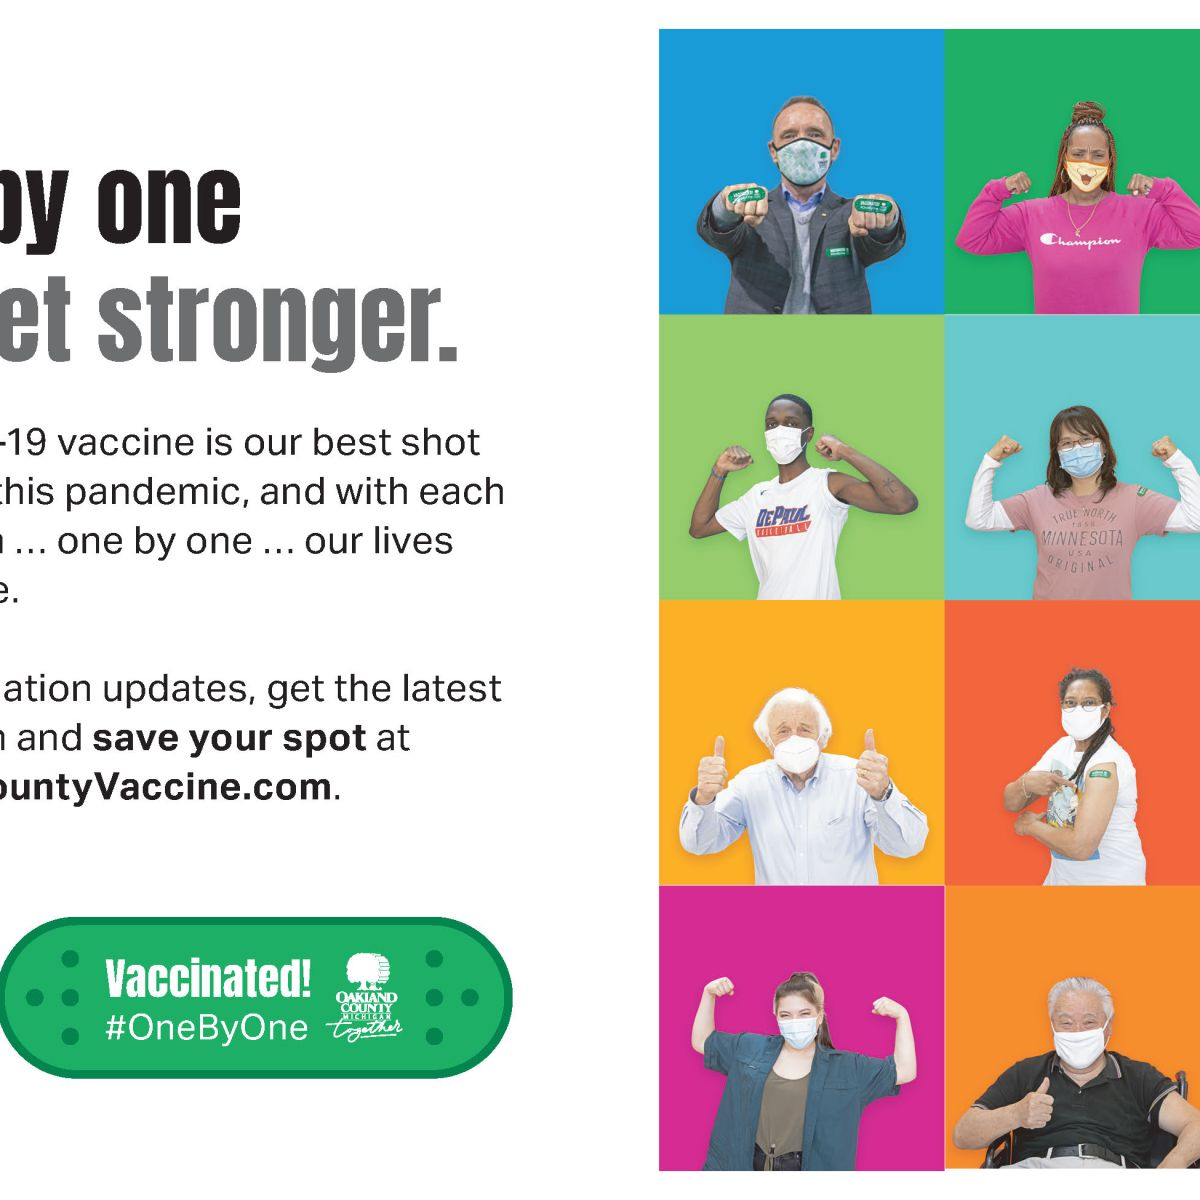 An infographic the reads: One by one we get stronger. It also includes details about the COVID-19 vaccine. A 4x3 grid next to the text shows people with different color backgrounds wearing masks and striking powerful poses.